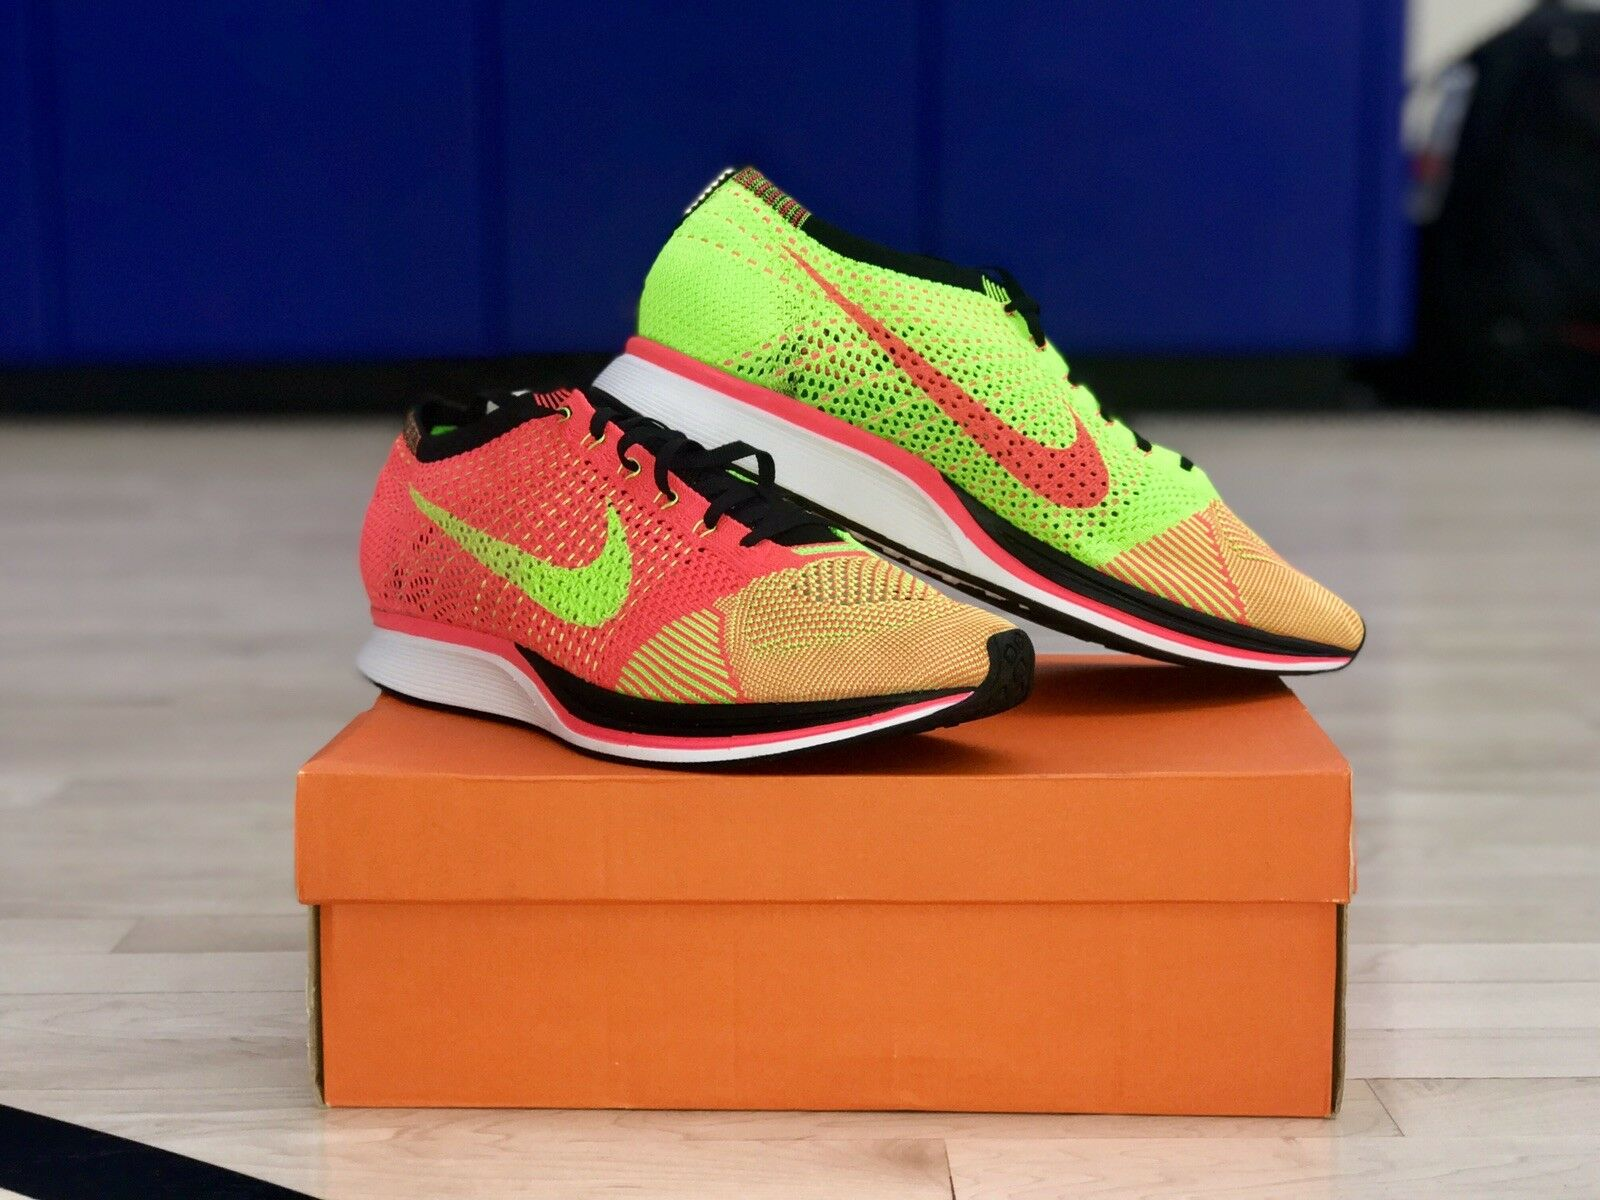 Nike Flyknit Racer HYPER Punch Electric Green Pink Orange 526628 603 Sz 12.5